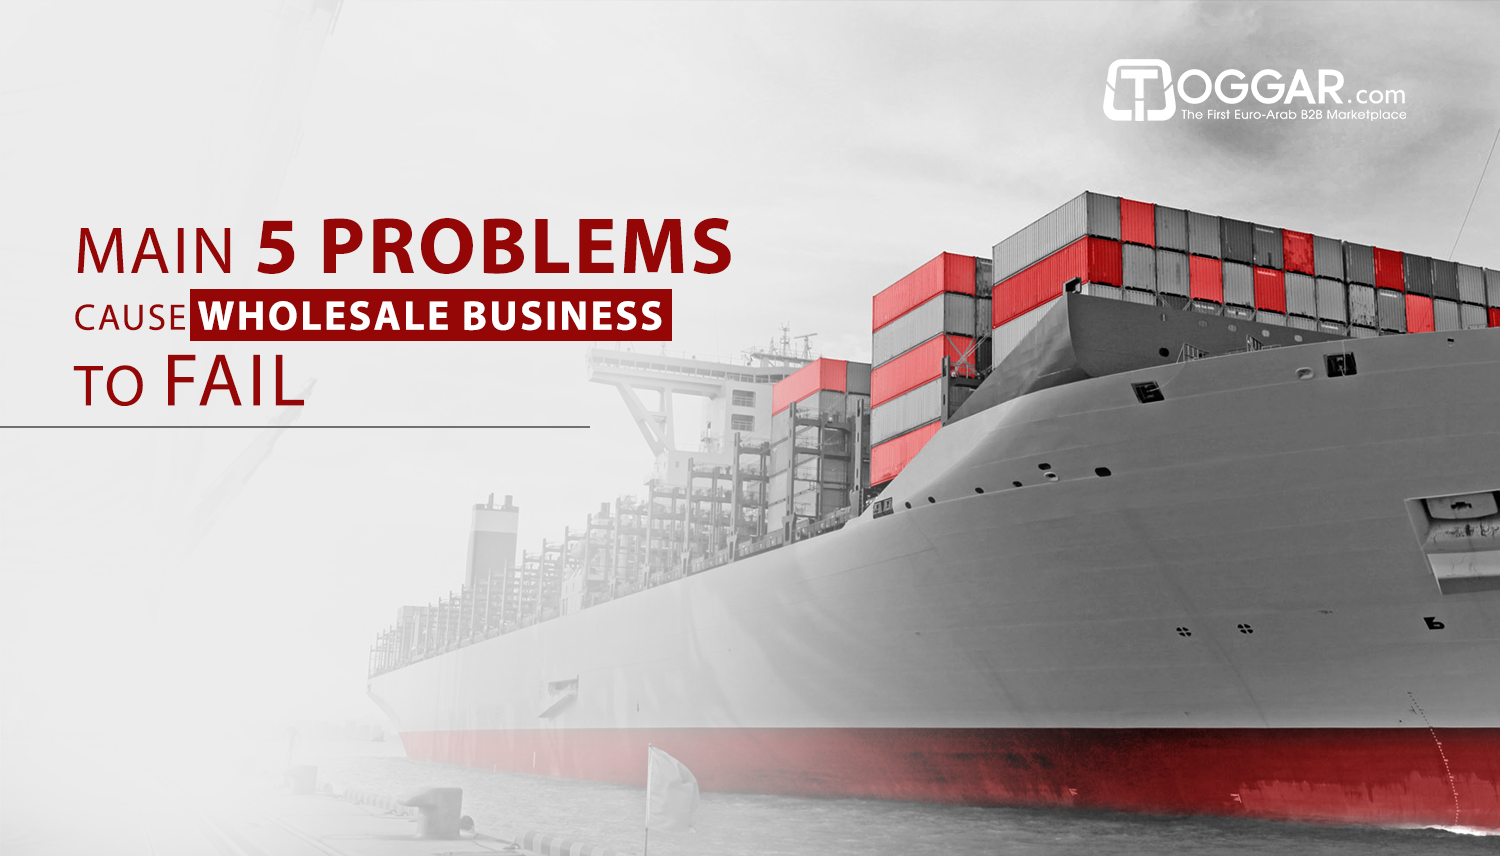 Main 5 Problems Cause Wholesale Business to Fail